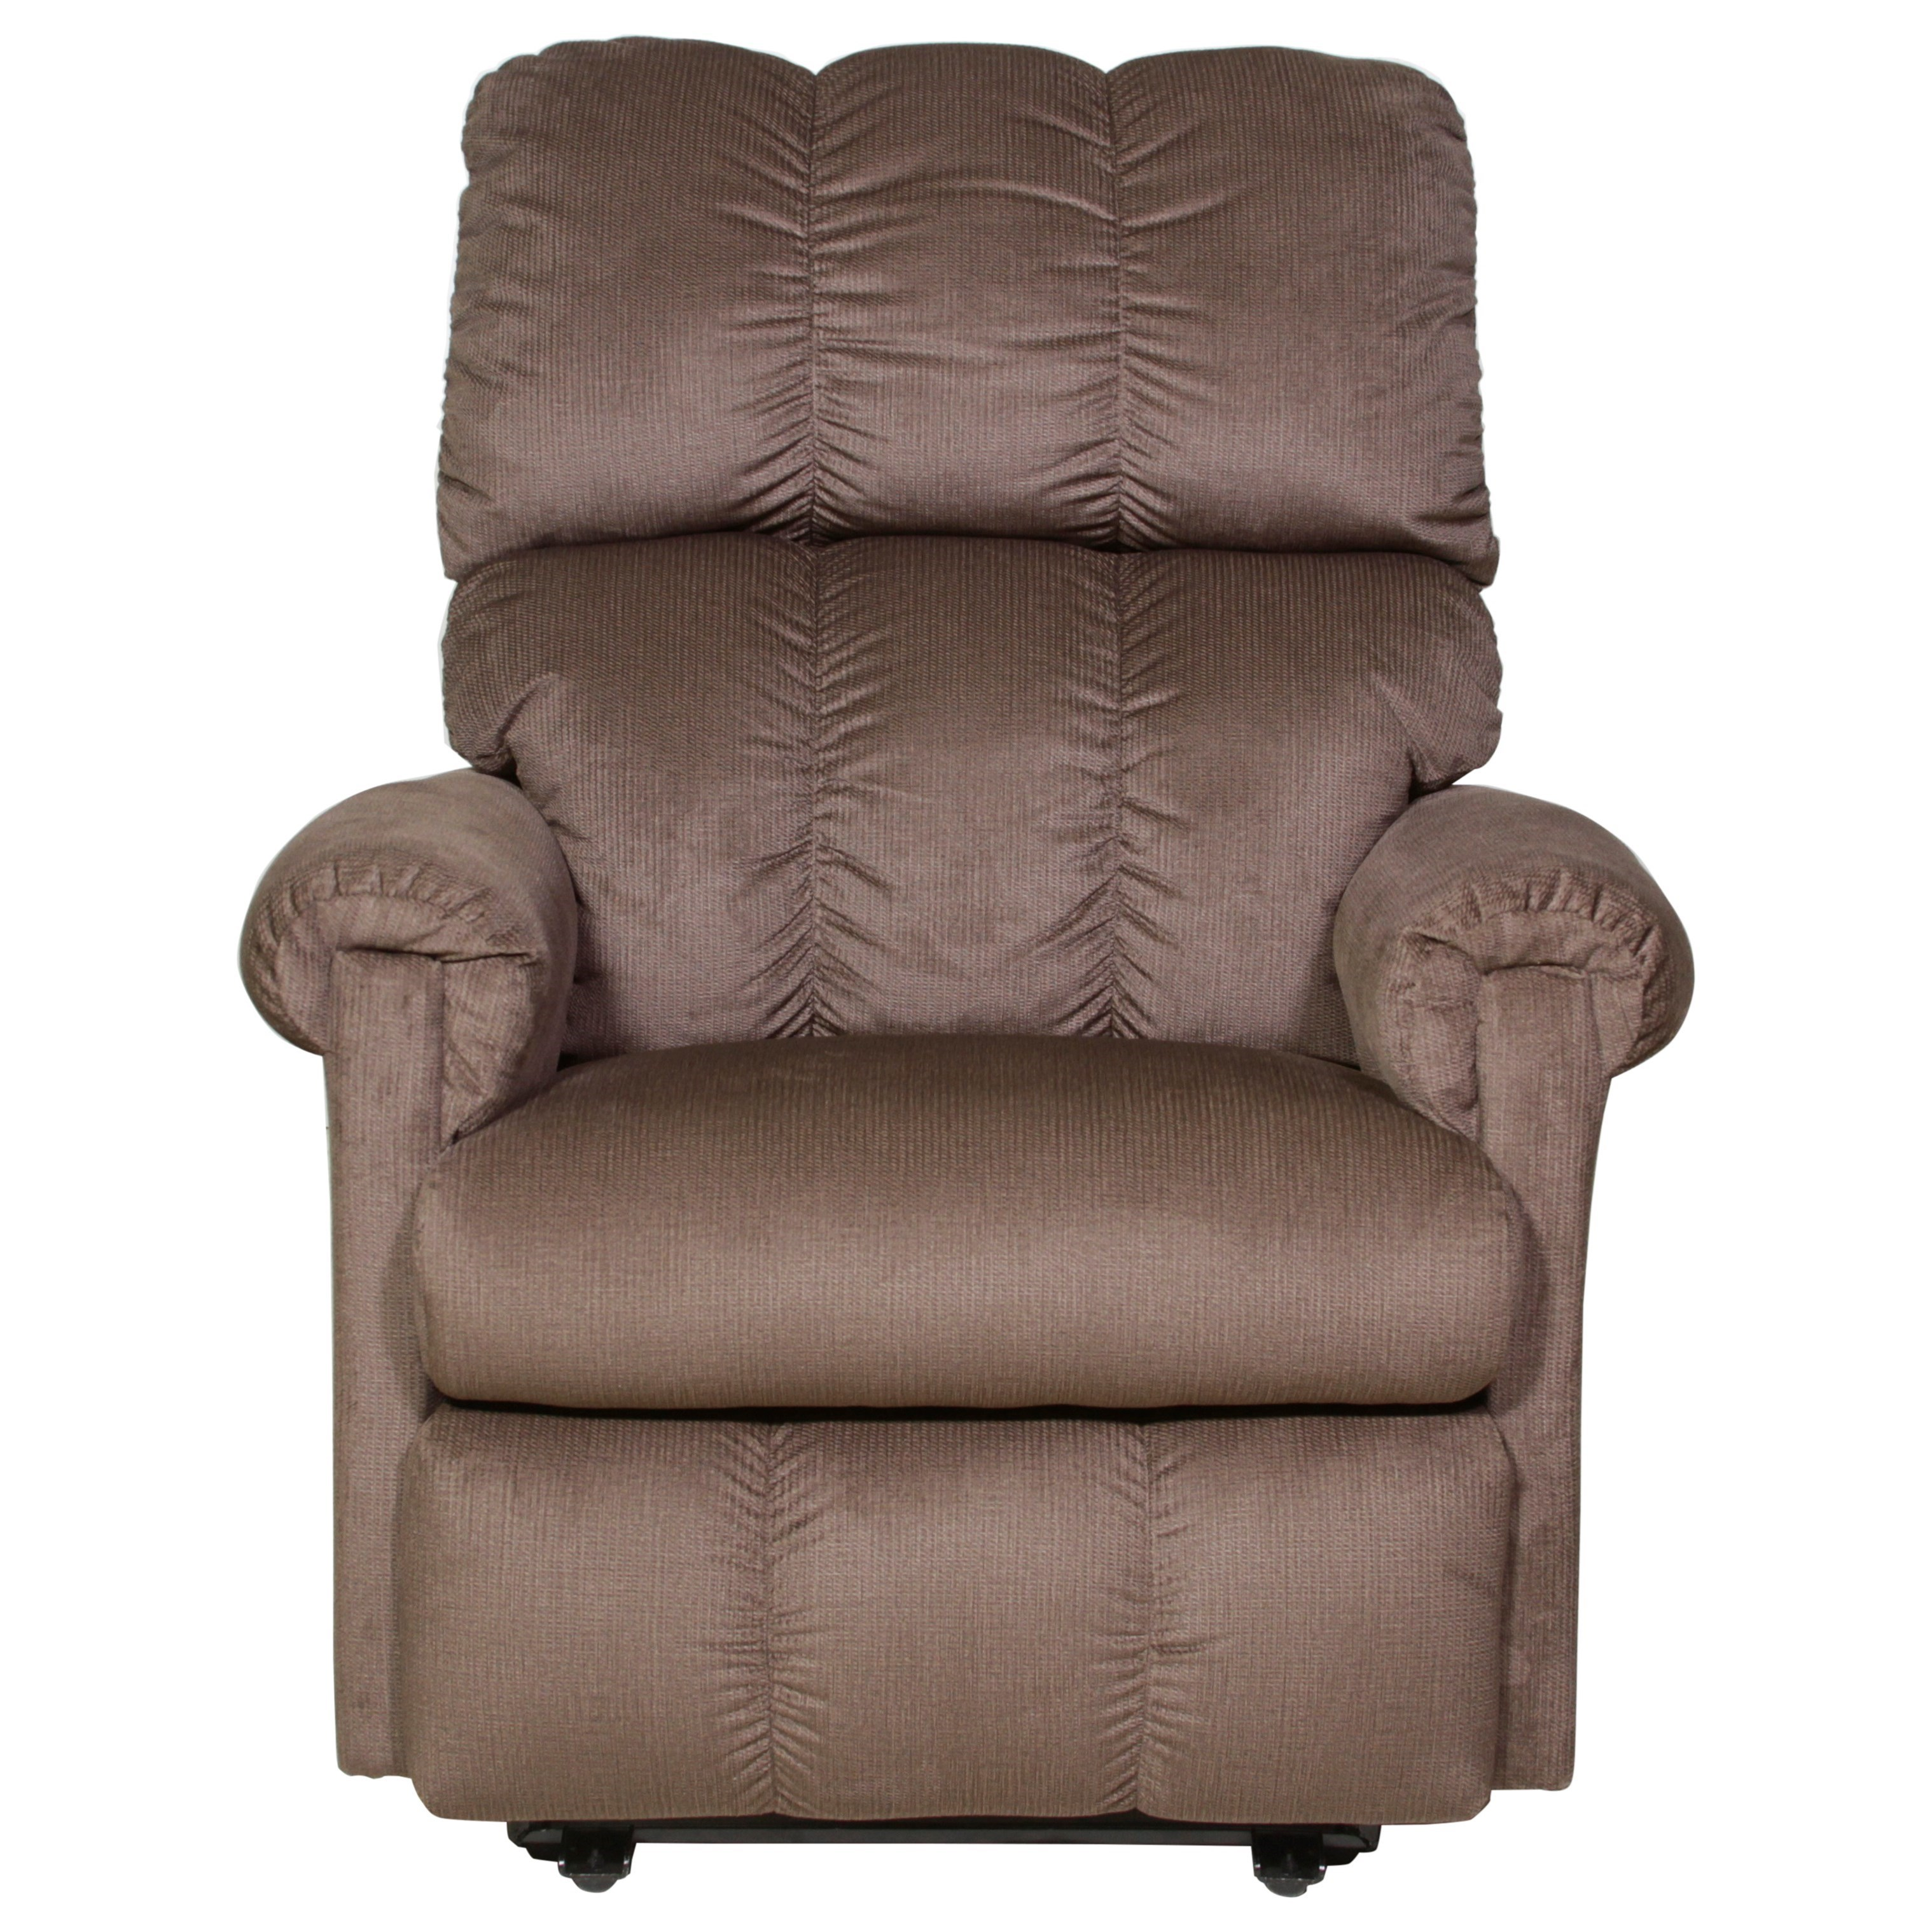 Recliners Vail Power Wall Recliner by La-Z-Boy at Sparks HomeStore